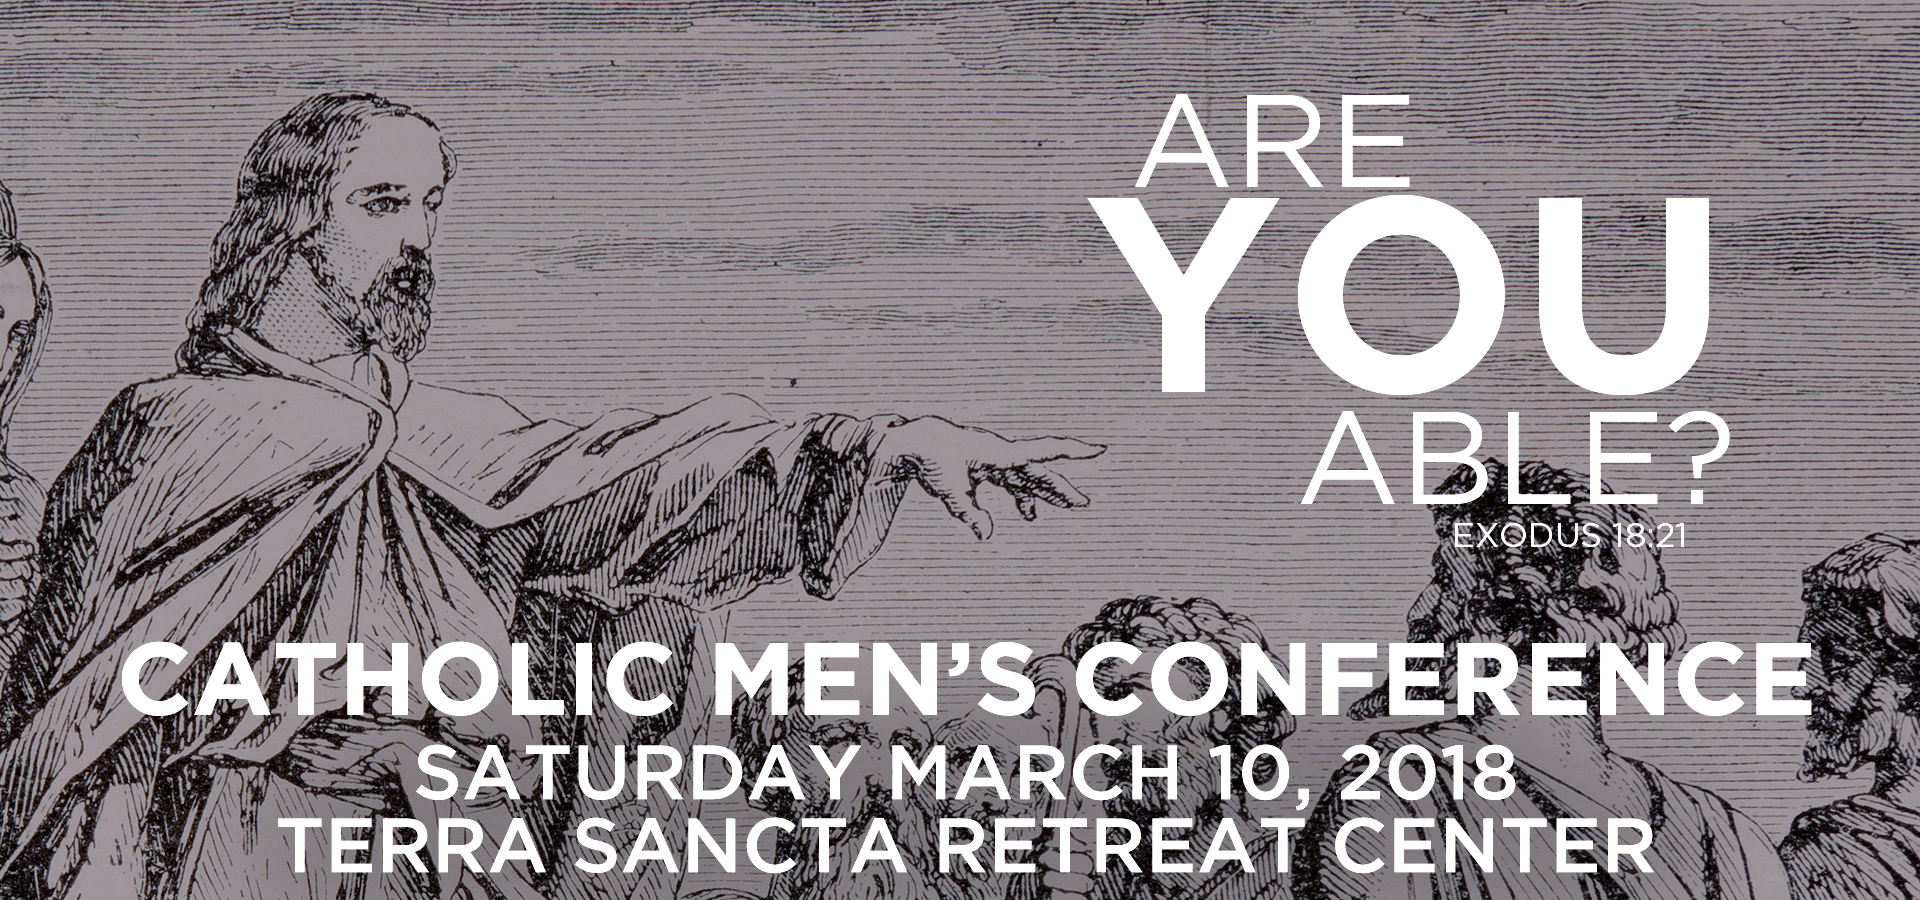 rapid city catholic single men Join us as we explore stories from the old and new testament about men of faith  who relied on fraternity and mutual support to fulfill their god-given mission in.